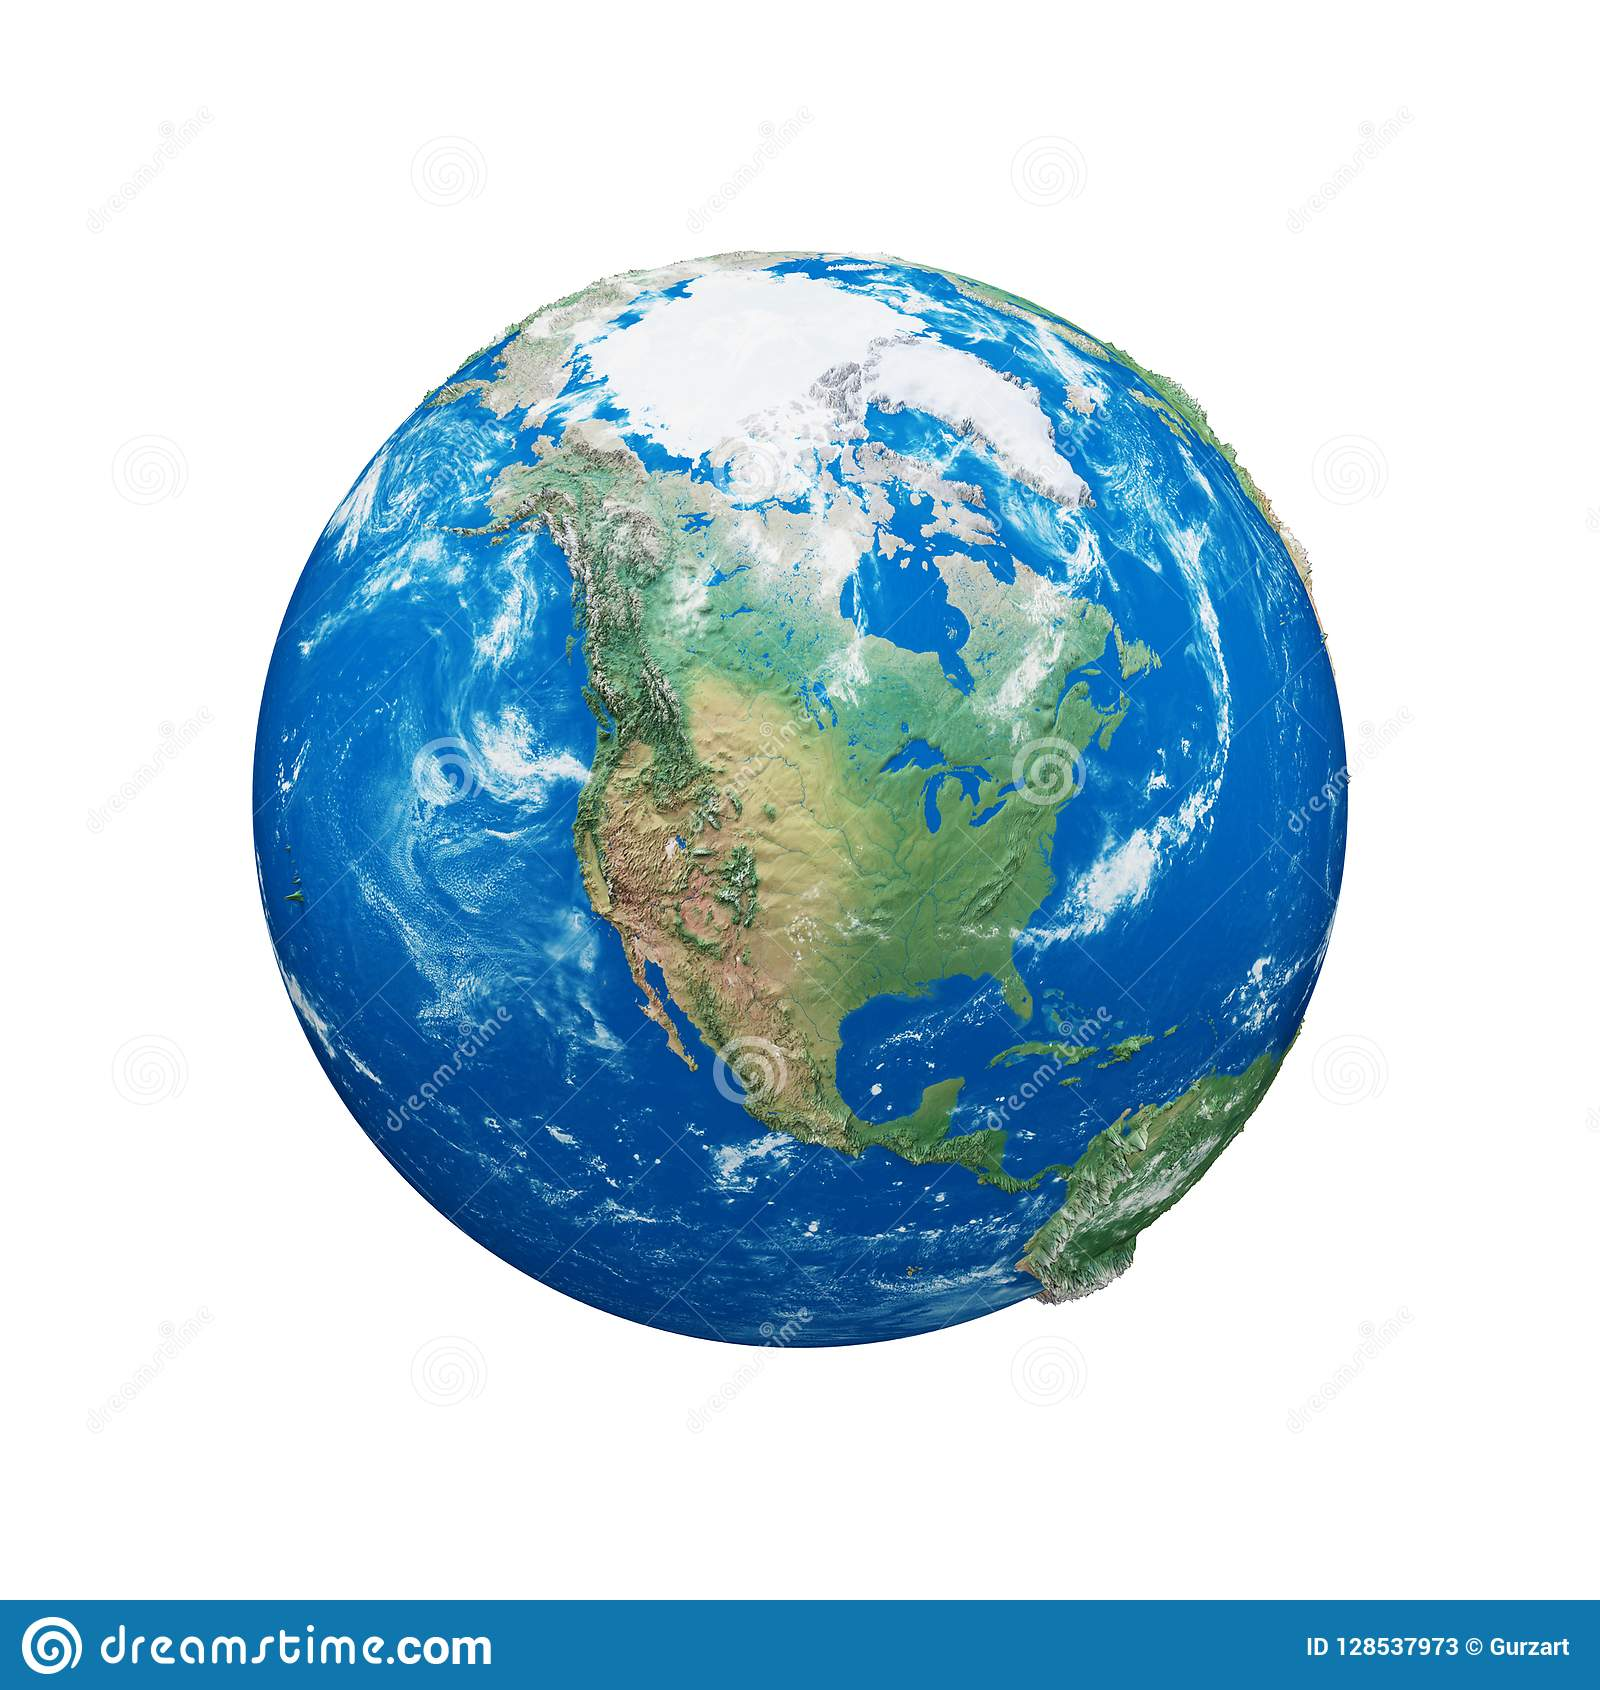 Planet Earth Globe Isolated On White Background Blue And Green